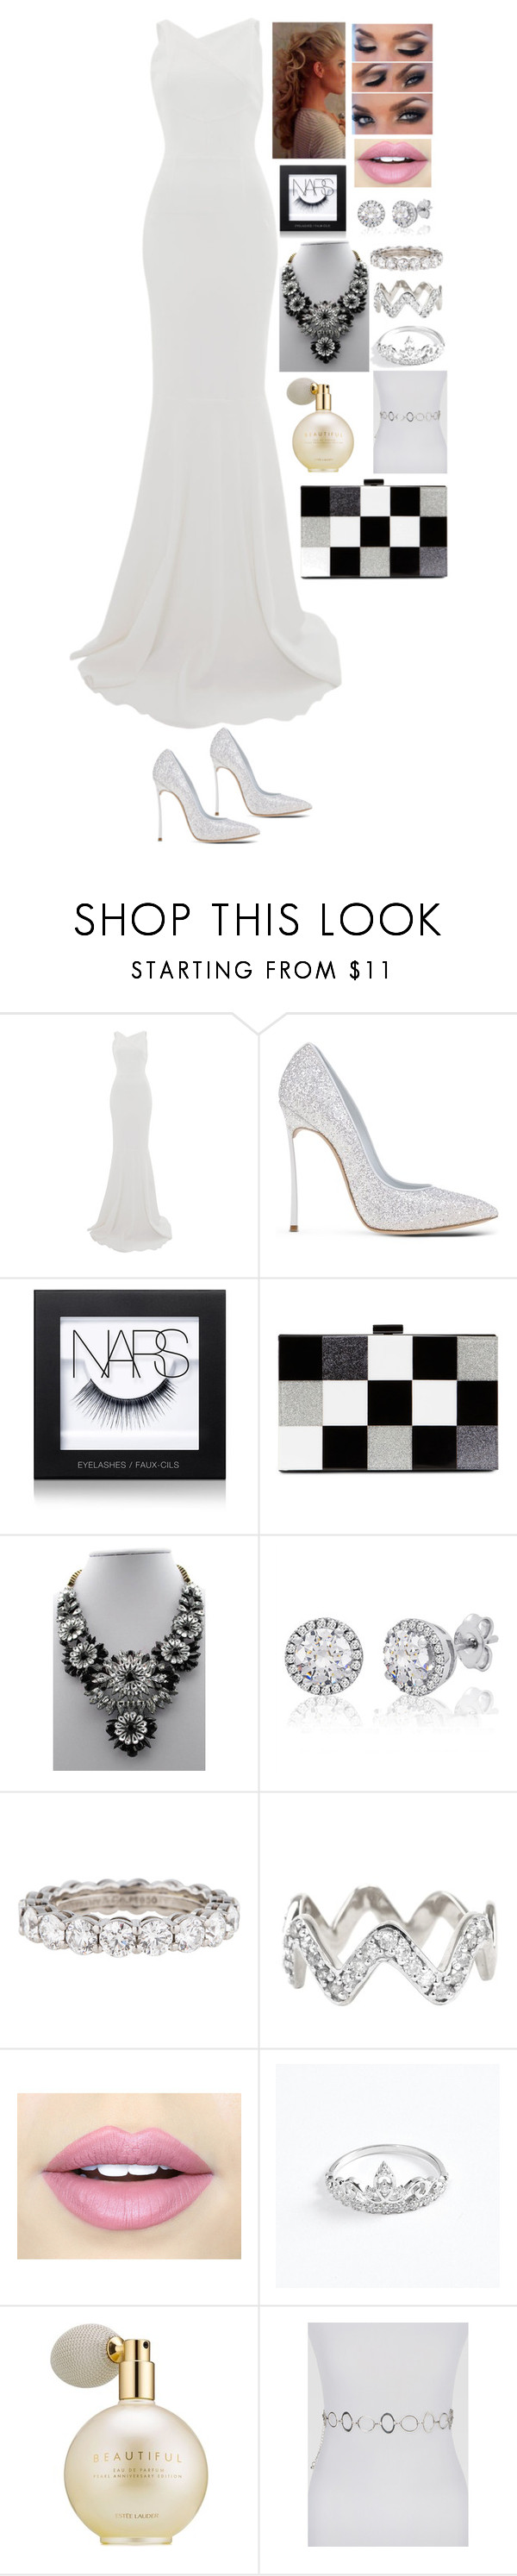 """White gown outfit"" by ynessica ❤ liked on Polyvore featuring Roland Mouret, Casadei, NARS Cosmetics, ALDO, Tiffany & Co., ADORNIA, Fiebiger, Estée Lauder and Ashley Stewart"